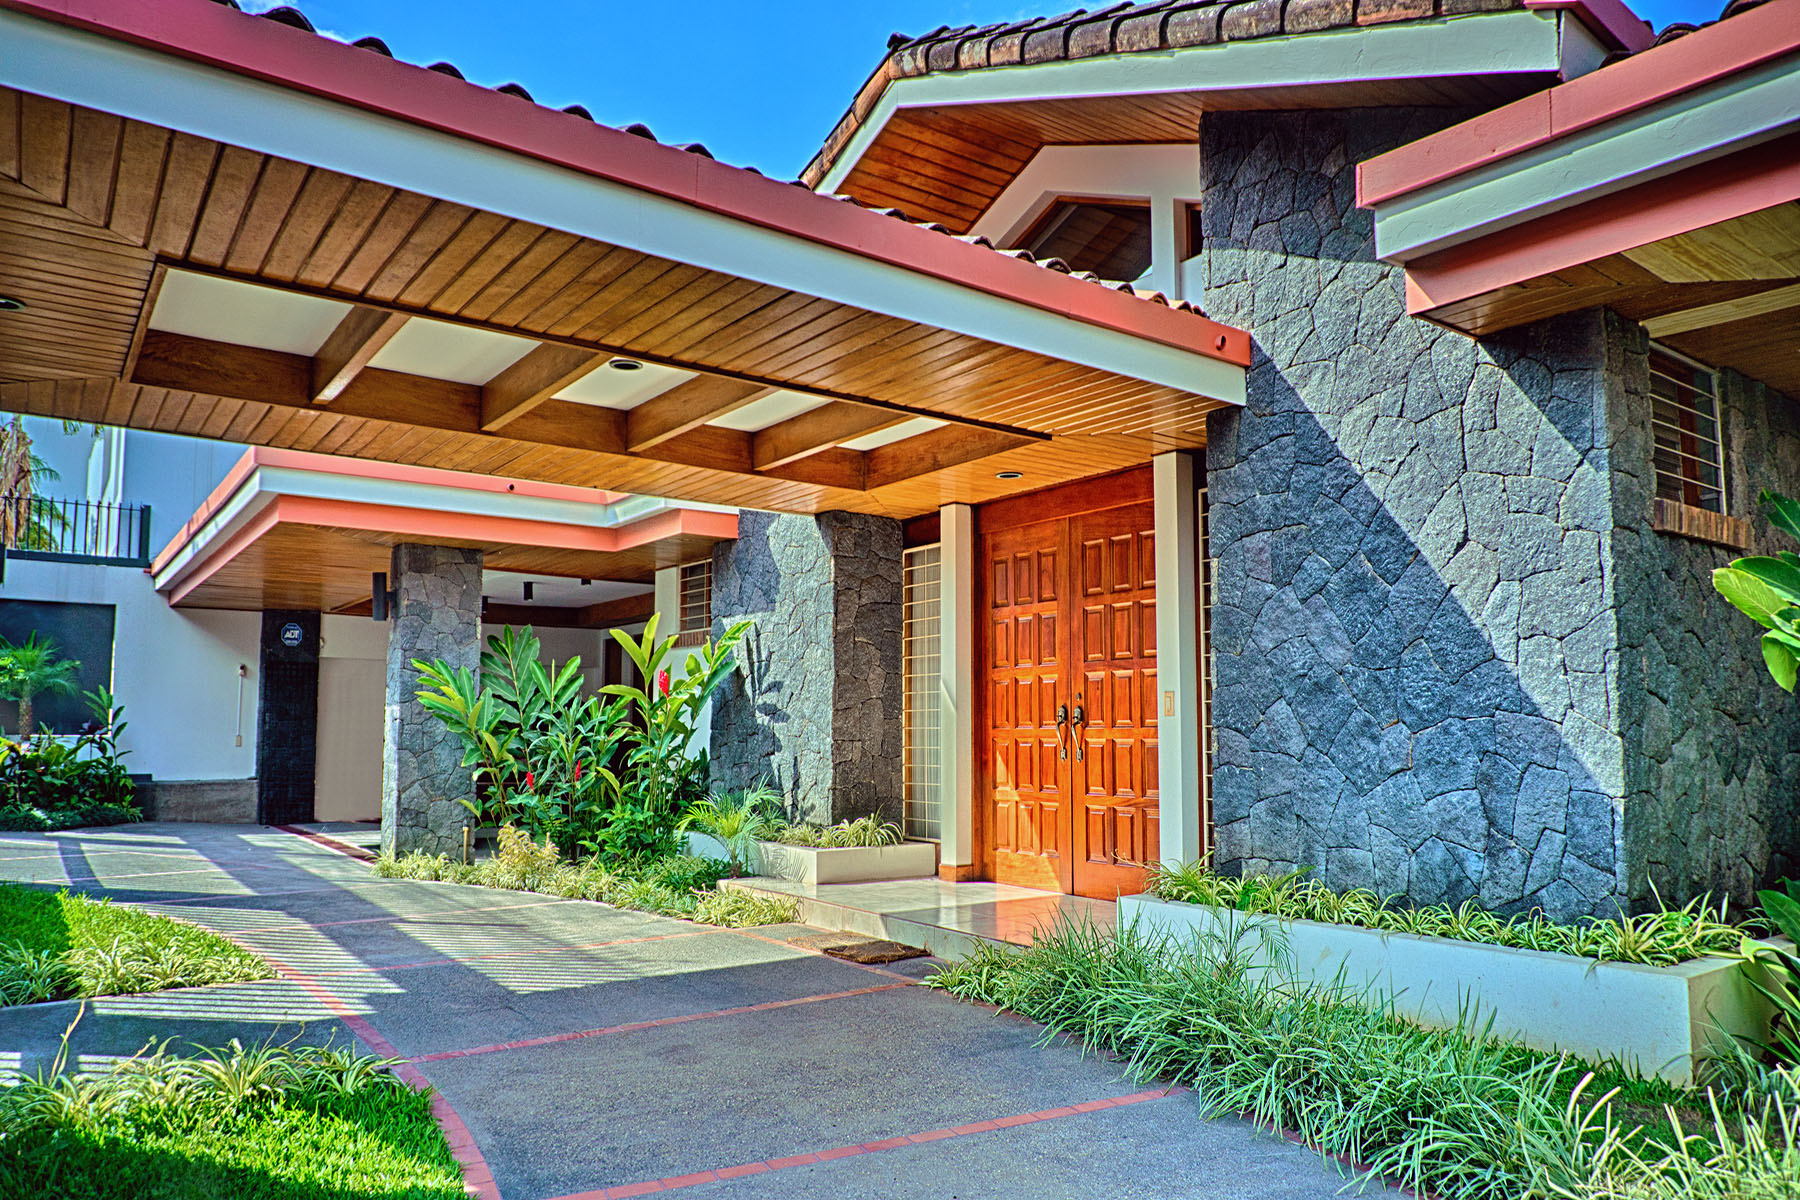 Single Family Home for Sale at Private Home los Yoses Other Costa Rica, Other Areas In Costa Rica Costa Rica